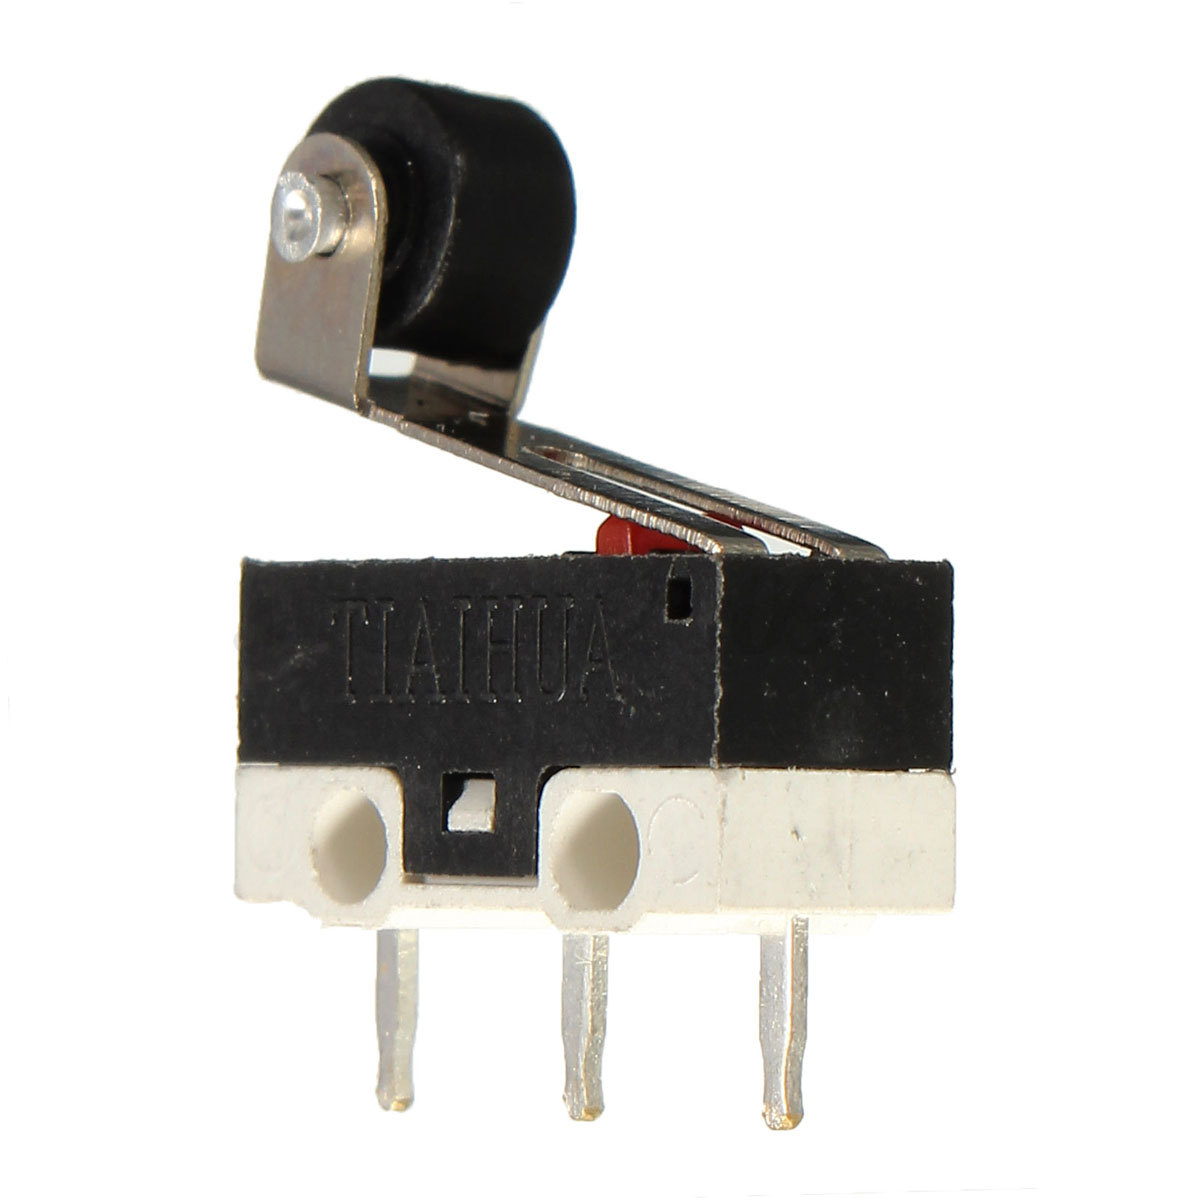 5pcs ultra mini micro switch 3 lever roller types spdt sub. Black Bedroom Furniture Sets. Home Design Ideas